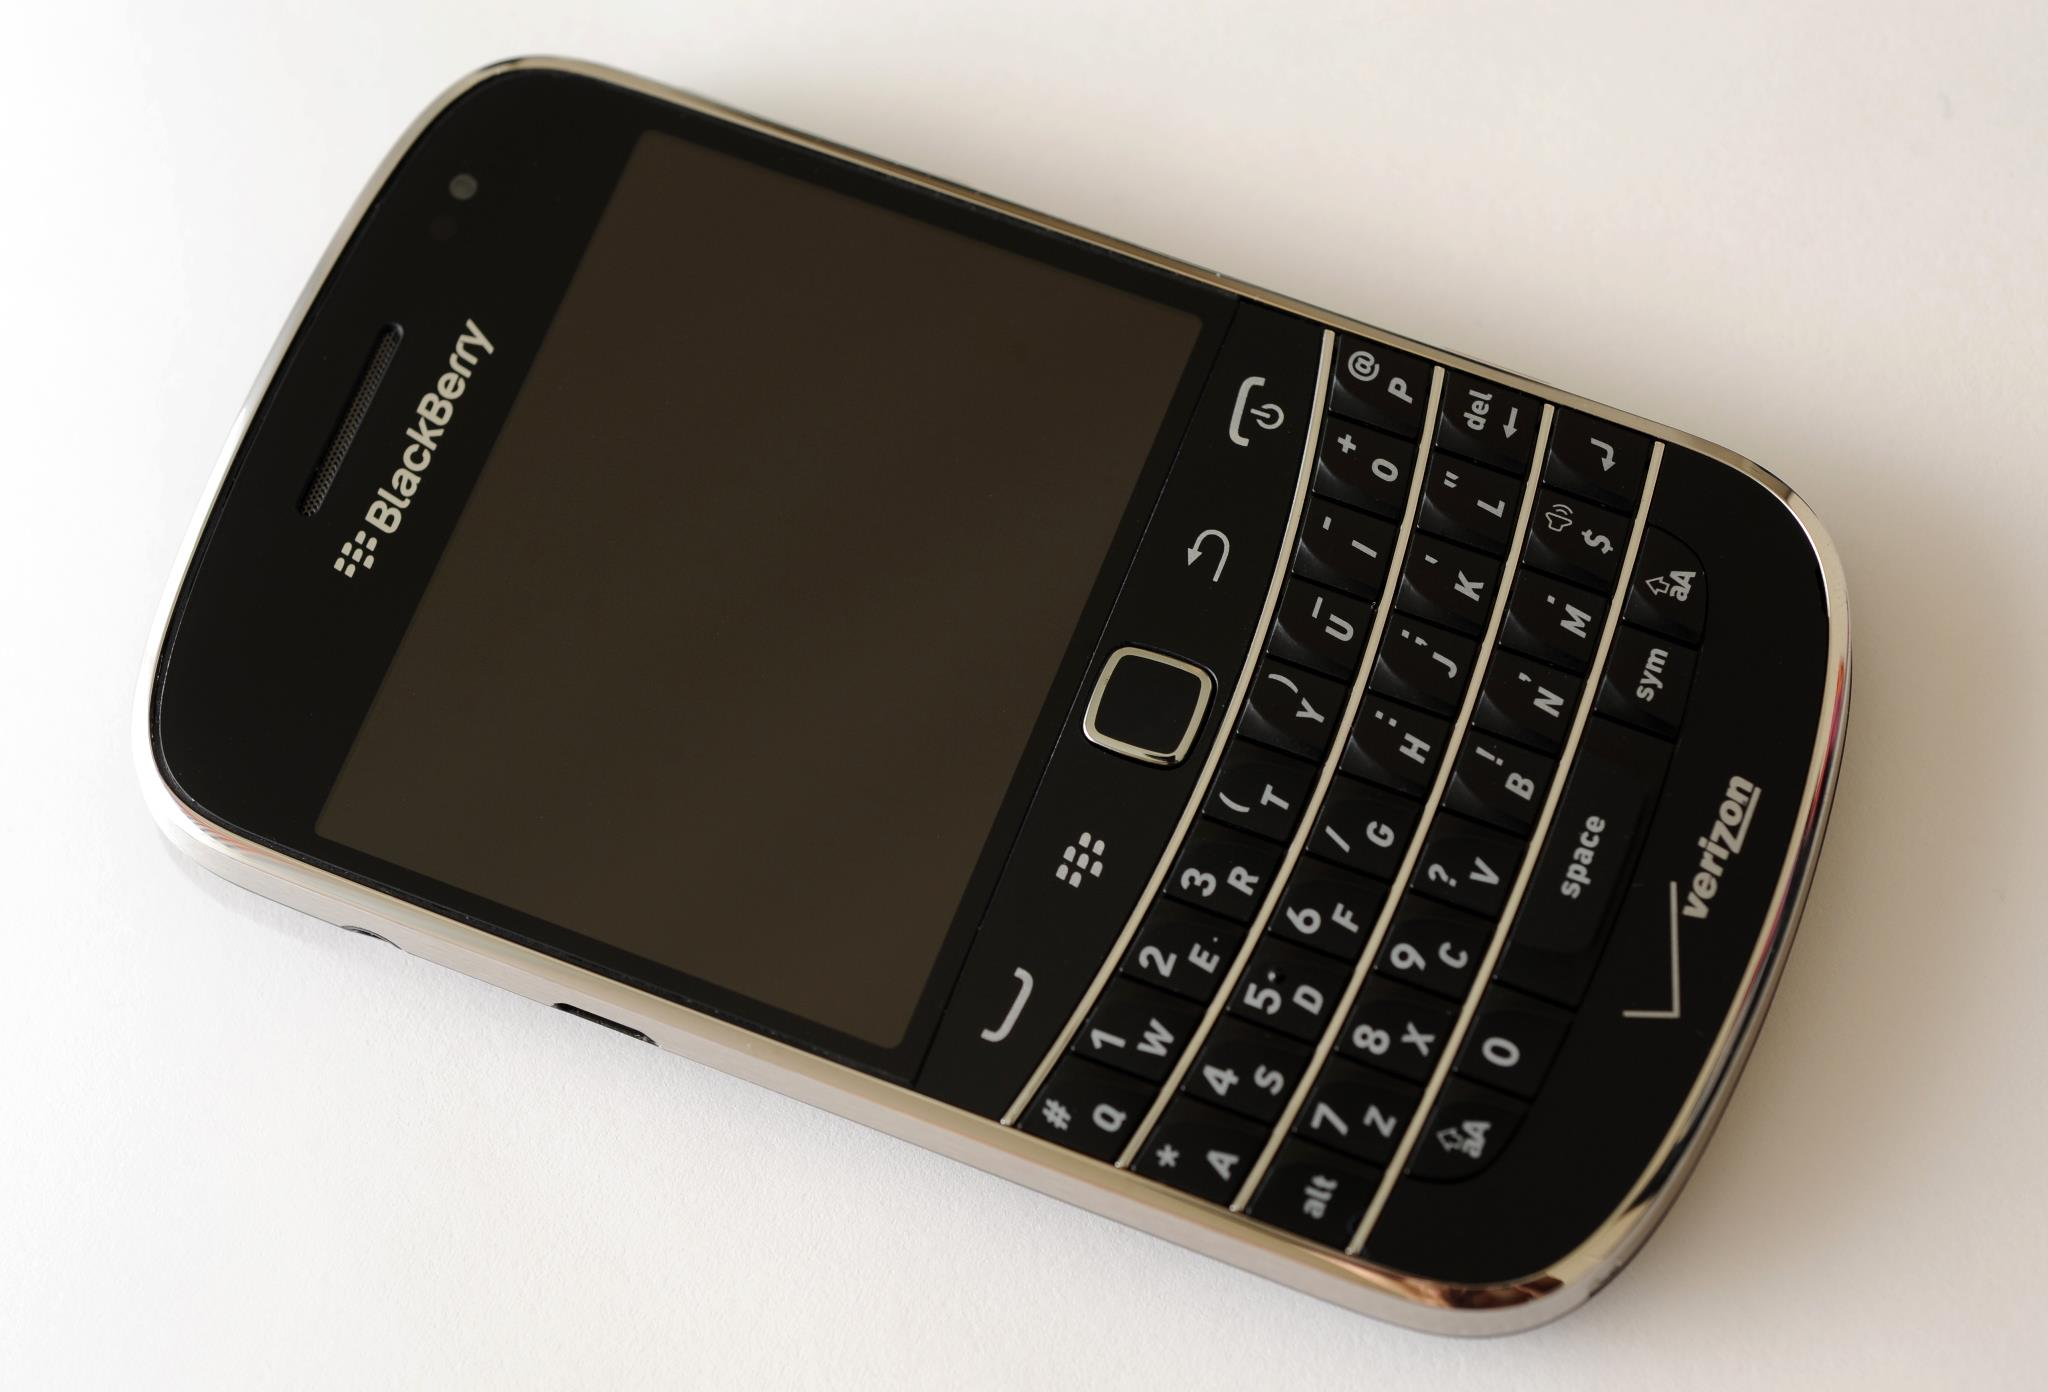 BlackBerry Bold - Wikipedia